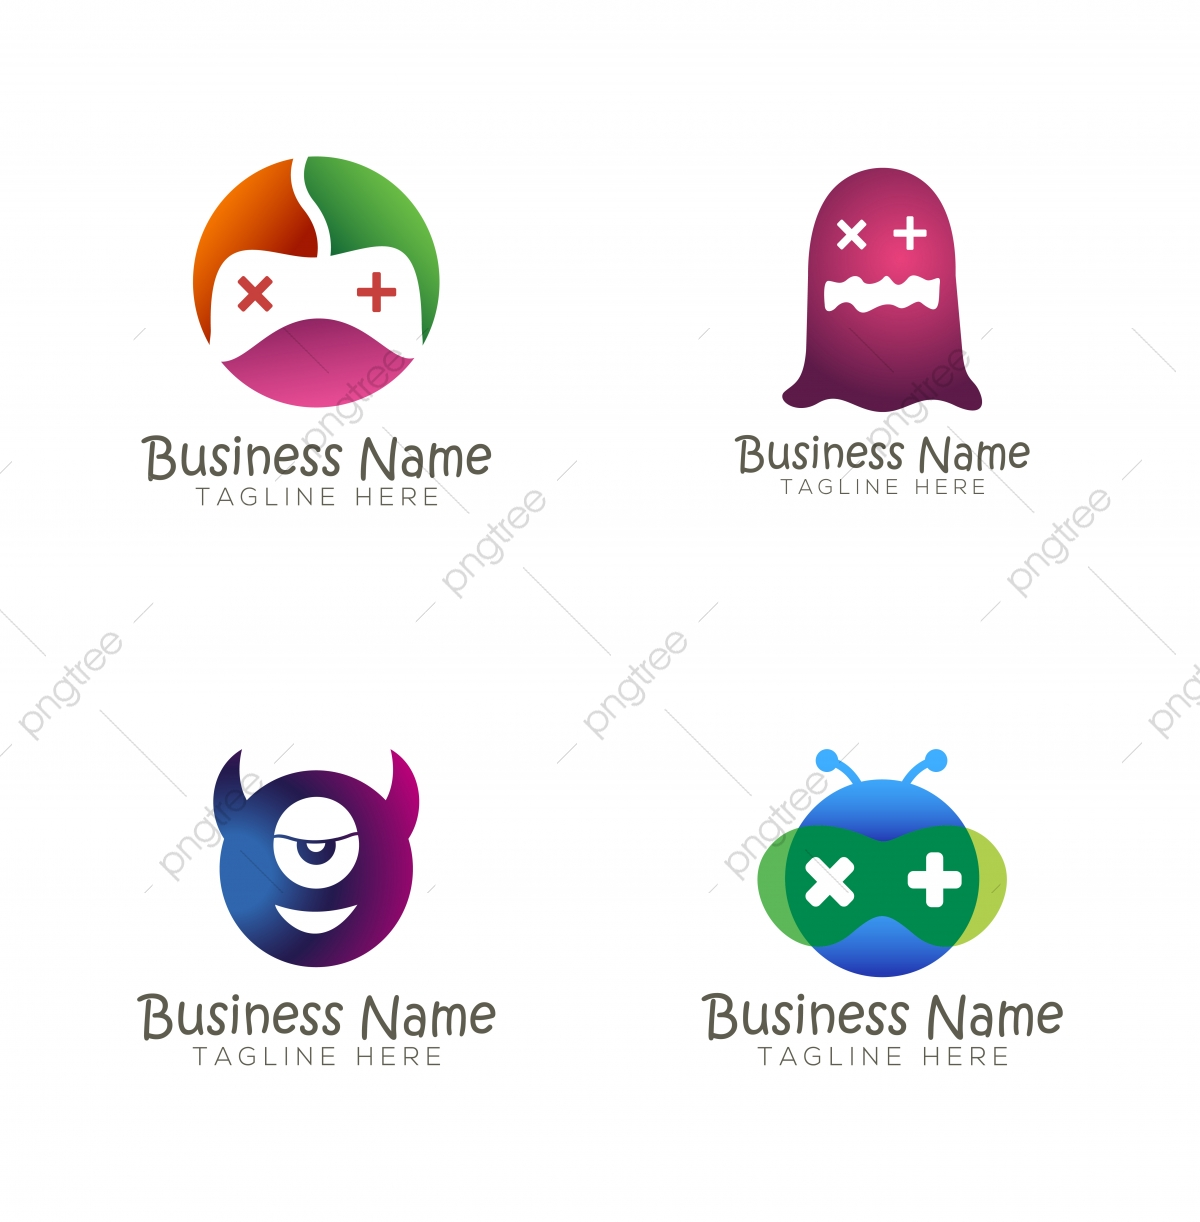 Online Game Logo And Icon Design Game Icons Logo Icons Online Icons Png And Vector With Transparent Background For Free Download